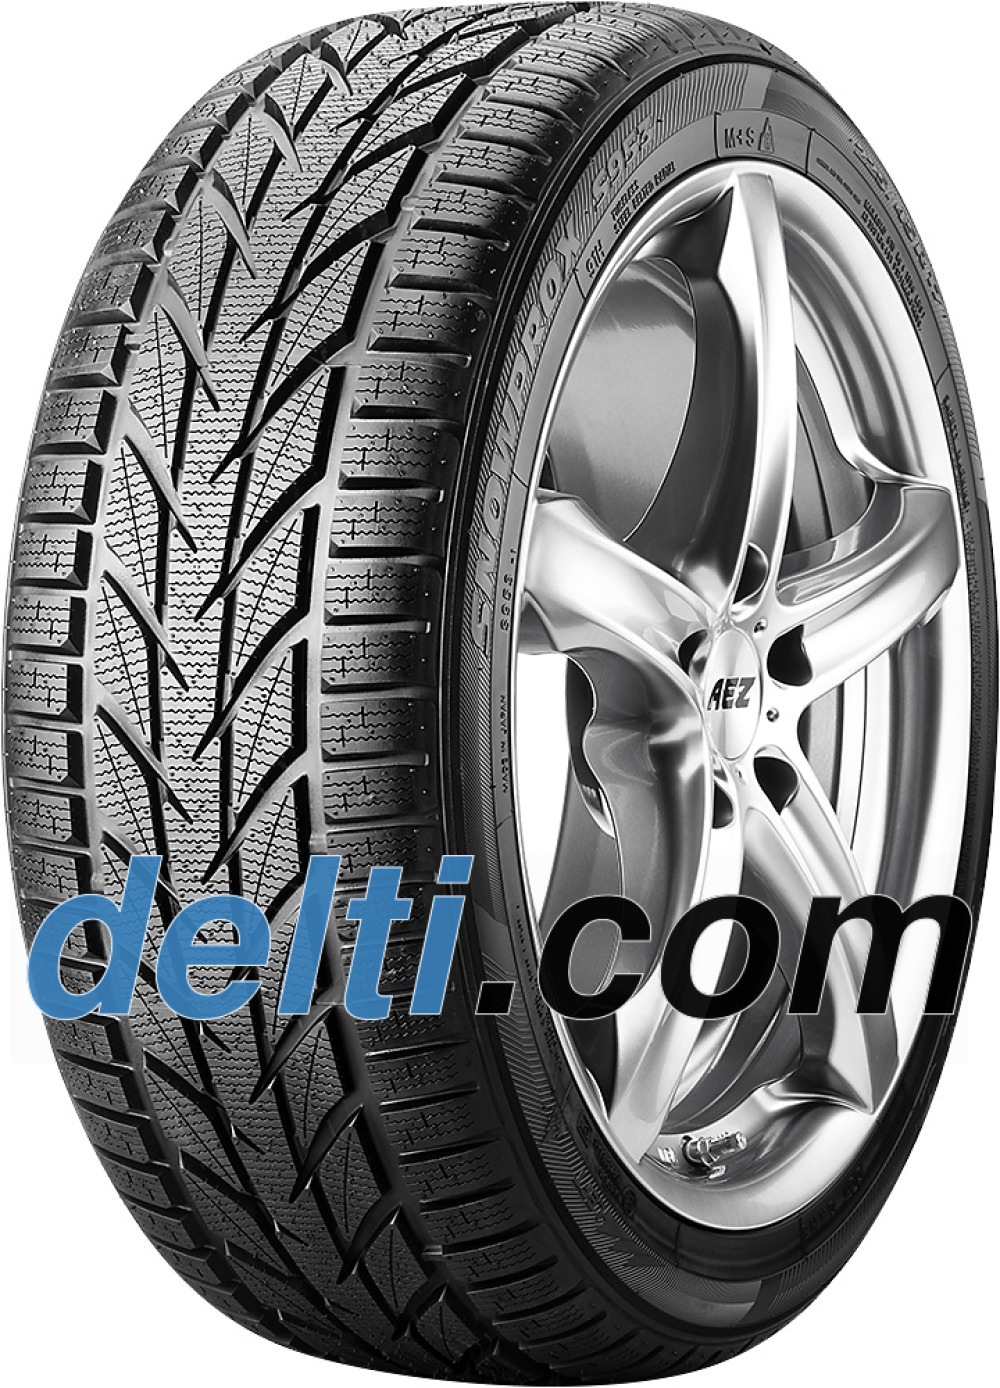 Toyo Snowprox S 953 ( 195/45 R16 84H XL , with rim protection ridge (FSL) )